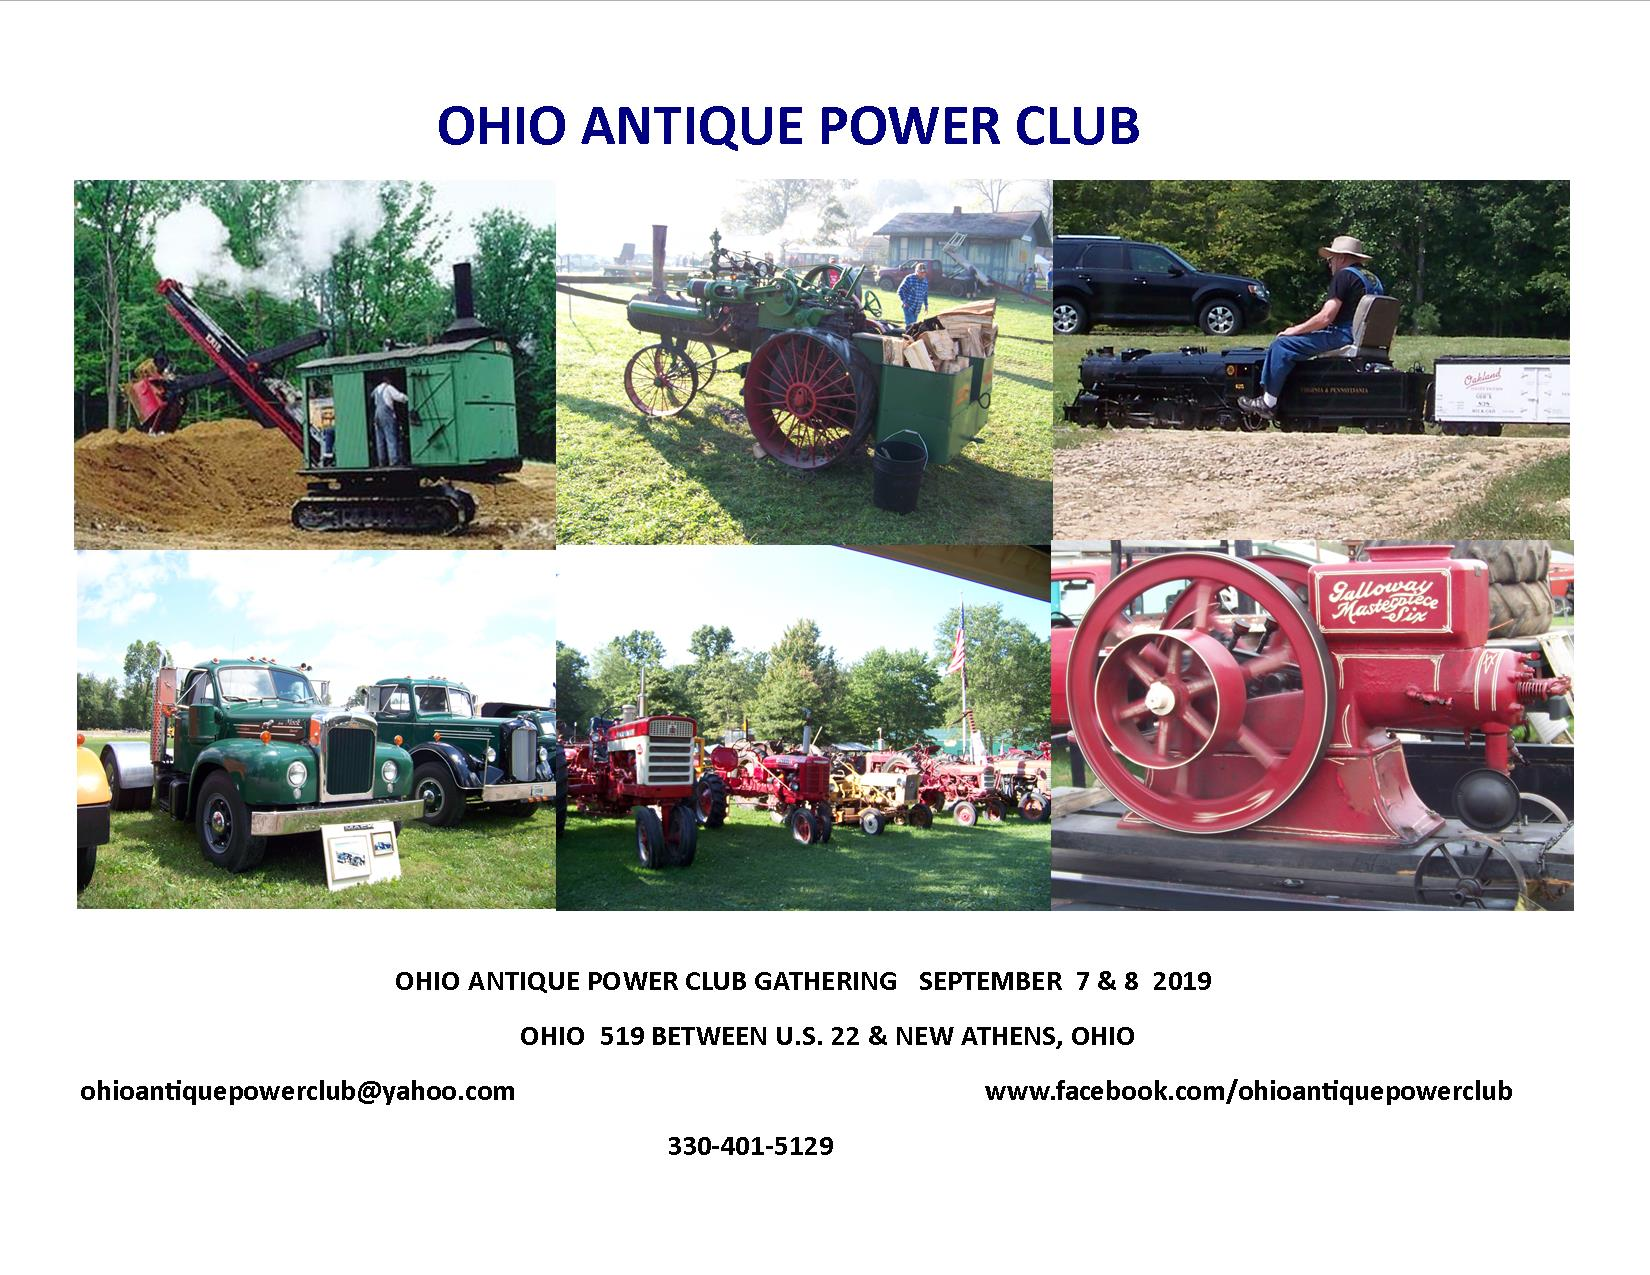 A flier for the Ohio Antique Power Club